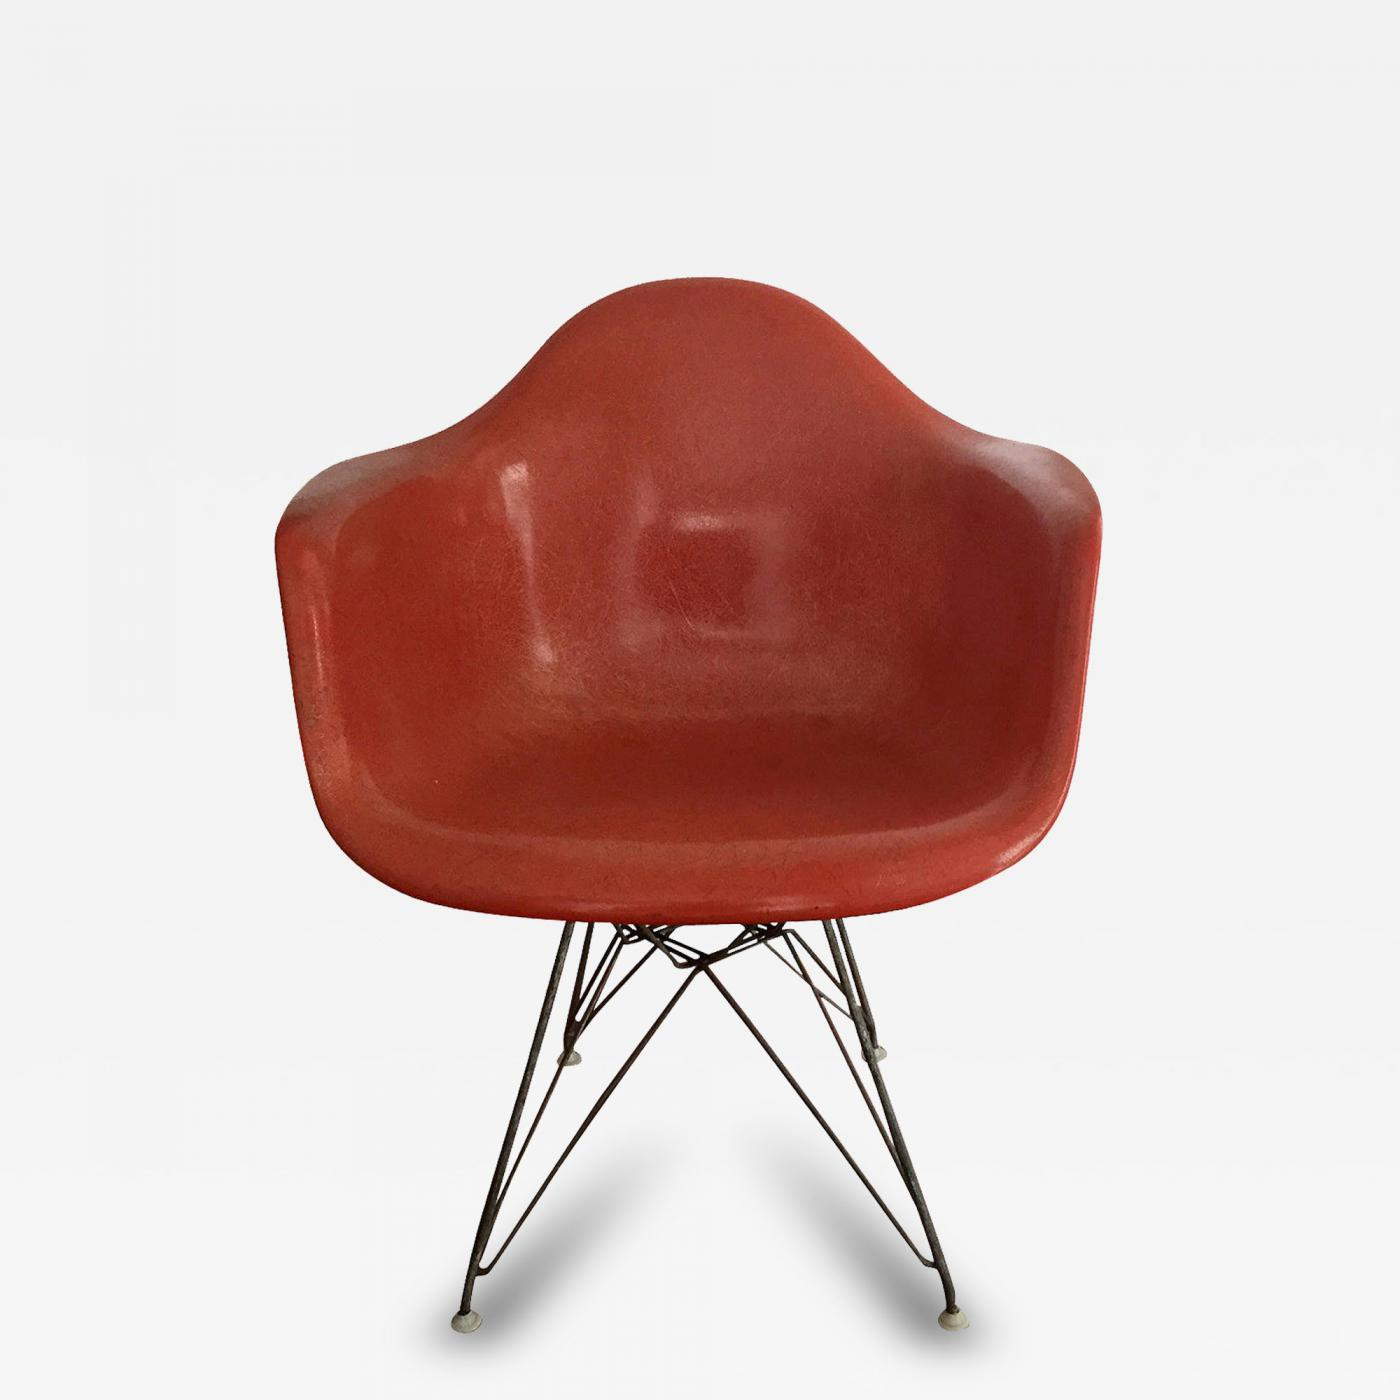 Eames Chair Dar Charles And Ray Eames Early Fiberglass Shell Dar Chair By Charles Eames For Herman Miller